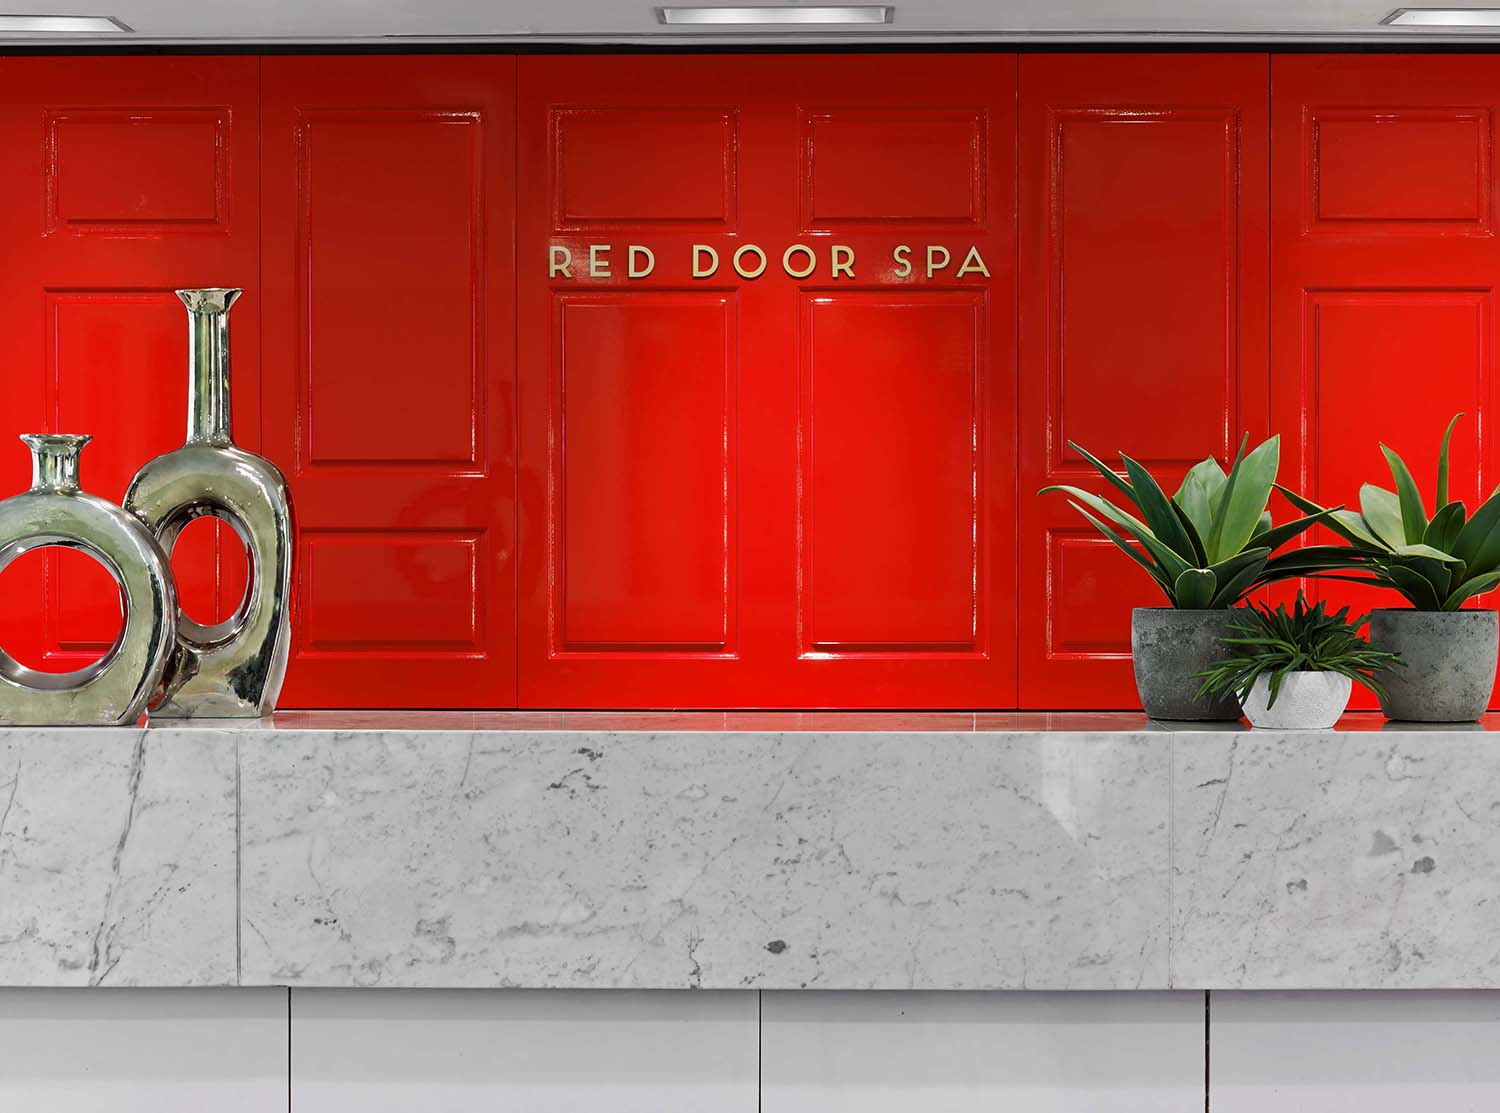 Red Door Salon & Spa is located in the heart of midtown New York.